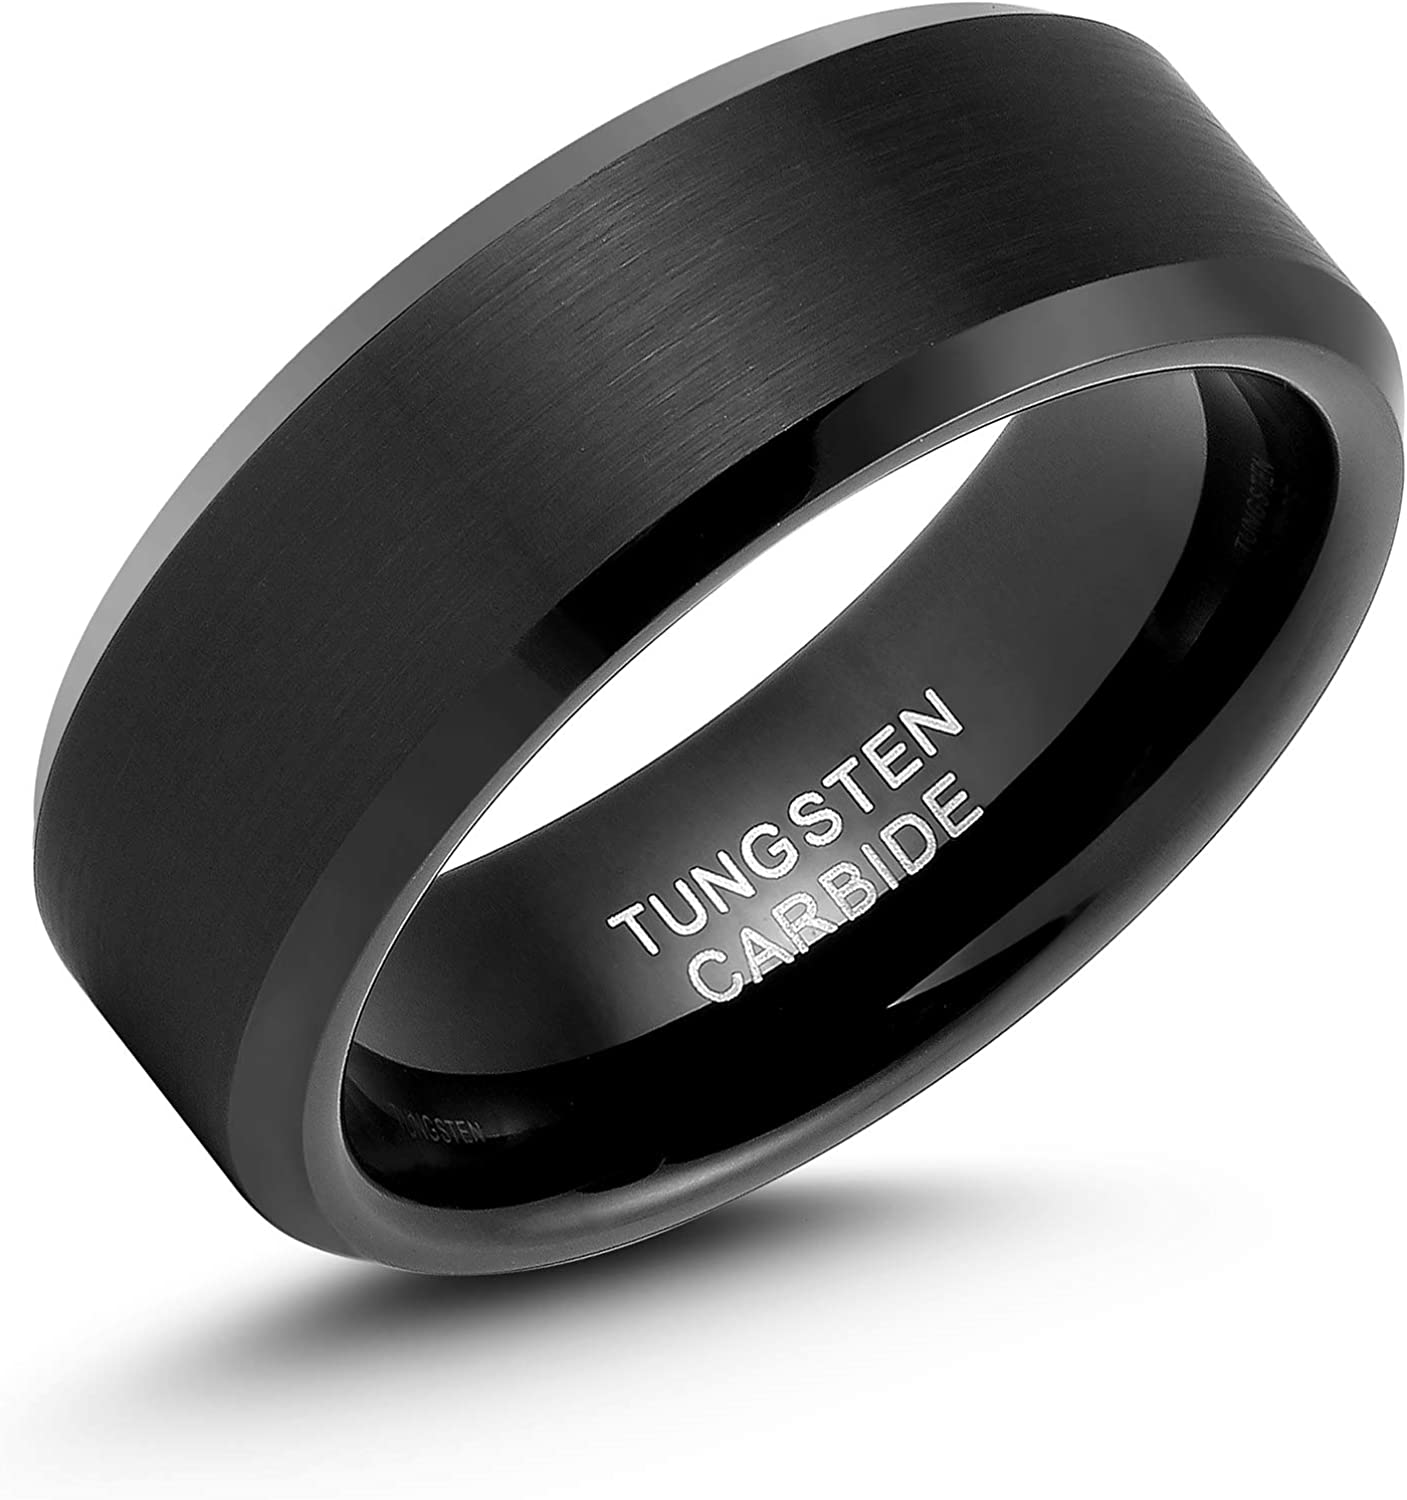 LerchPhi Mens 8mm Black Tungsten Carbide Ring Matte Brushed with Bevelled Edge Free Personalized Custom Name Date Coordinates Engrave Supported Comfort Fit Wedding Band